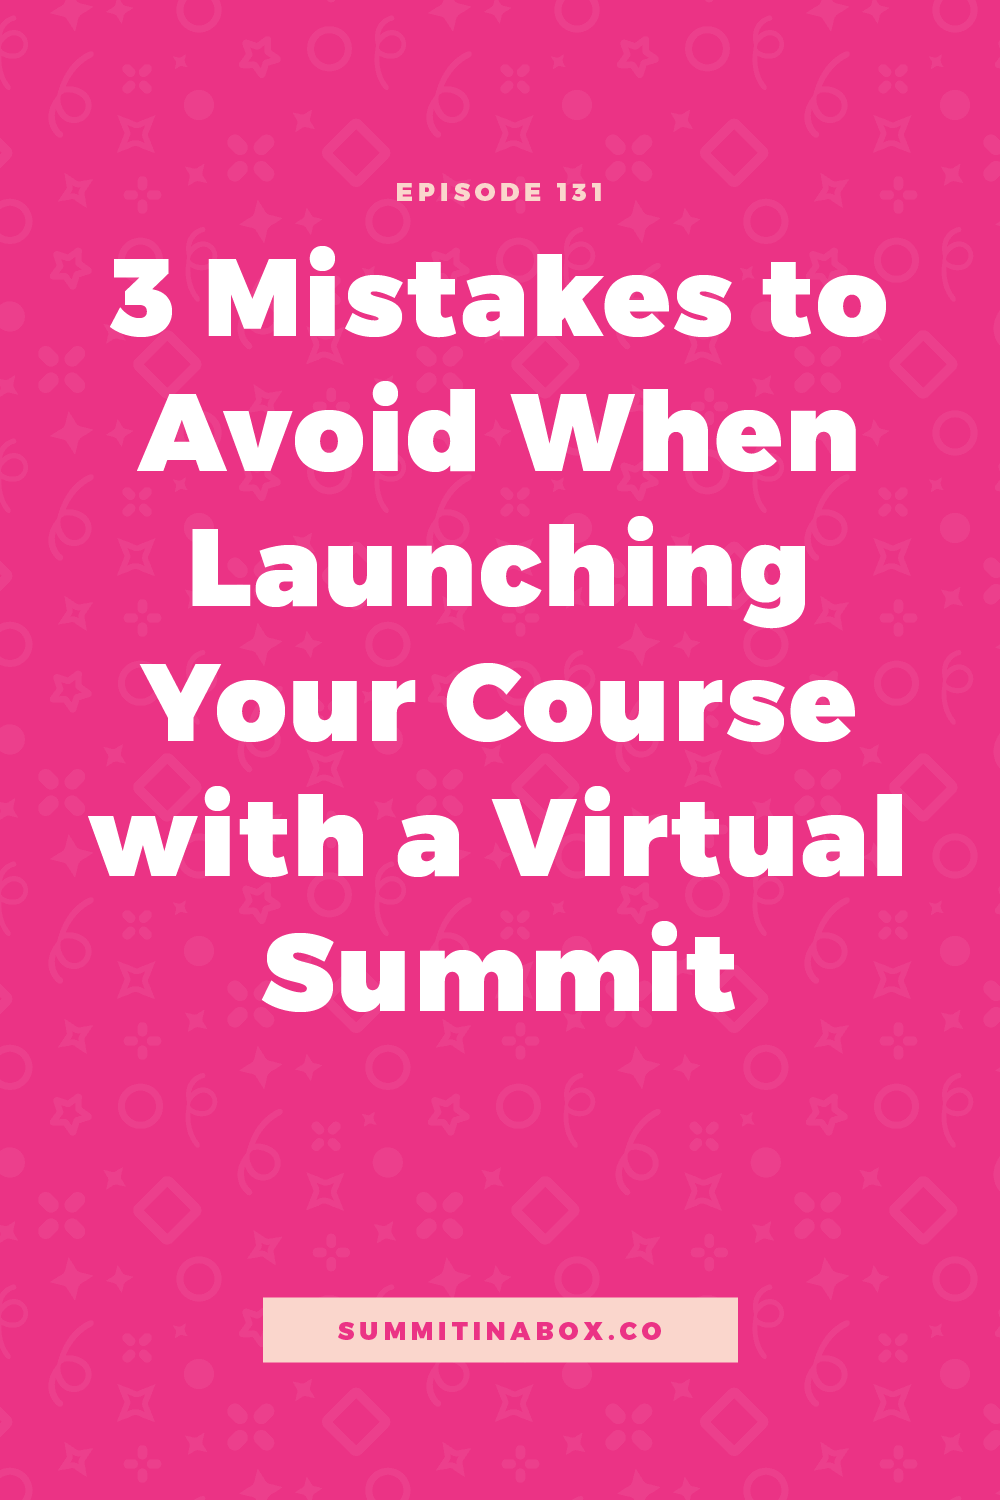 Let's cover the 3 biggest mistakes I see when using a virtual summit to launch your course and how to avoid them to have a successful, feel-good launch.